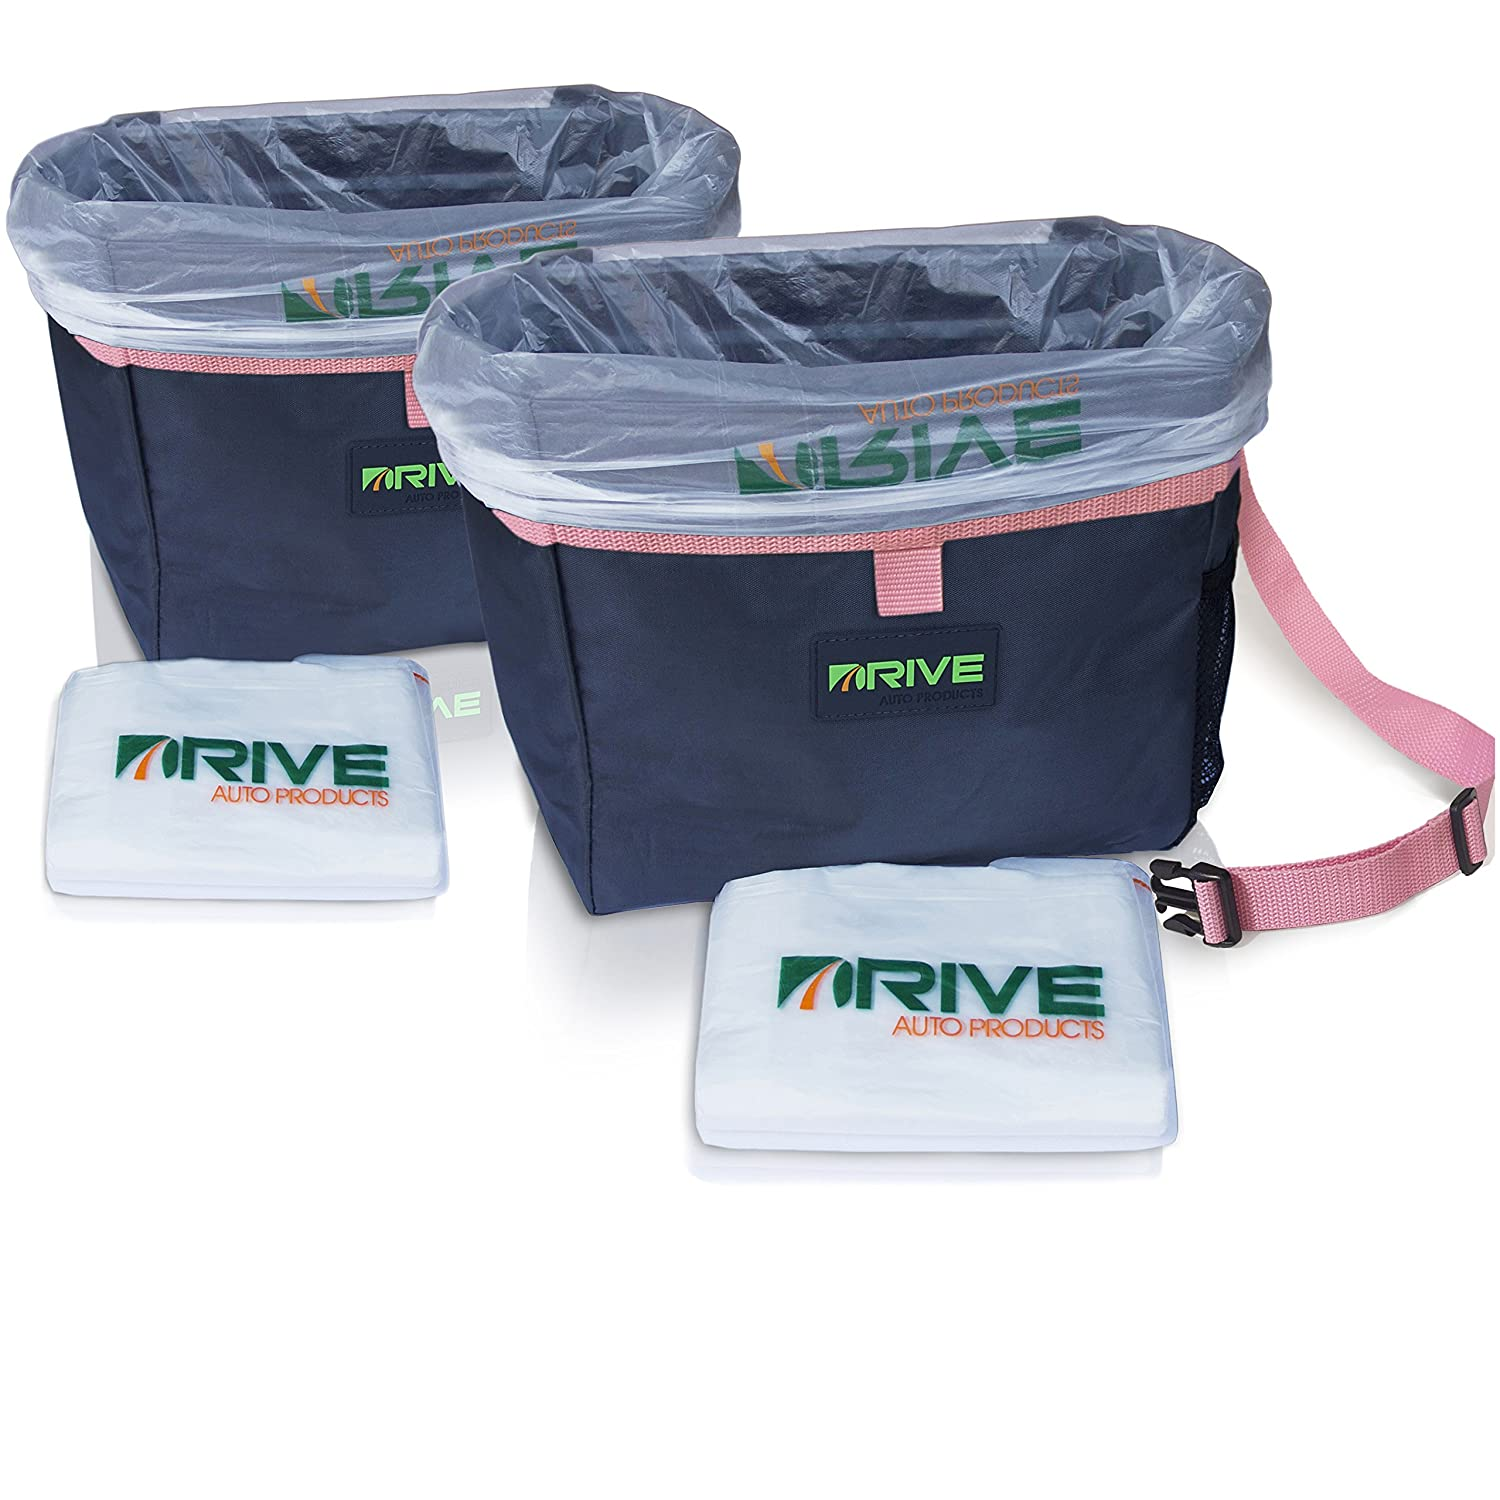 The Drive Bin Car Garbage Can, Pink - Best Auto Trash Bag for Litter, Free Waste Basket Liners - Hanging Recycle Kit is Universal, Waterproof Organizer Makes a Great Drink Cooler & Road Trip Gift